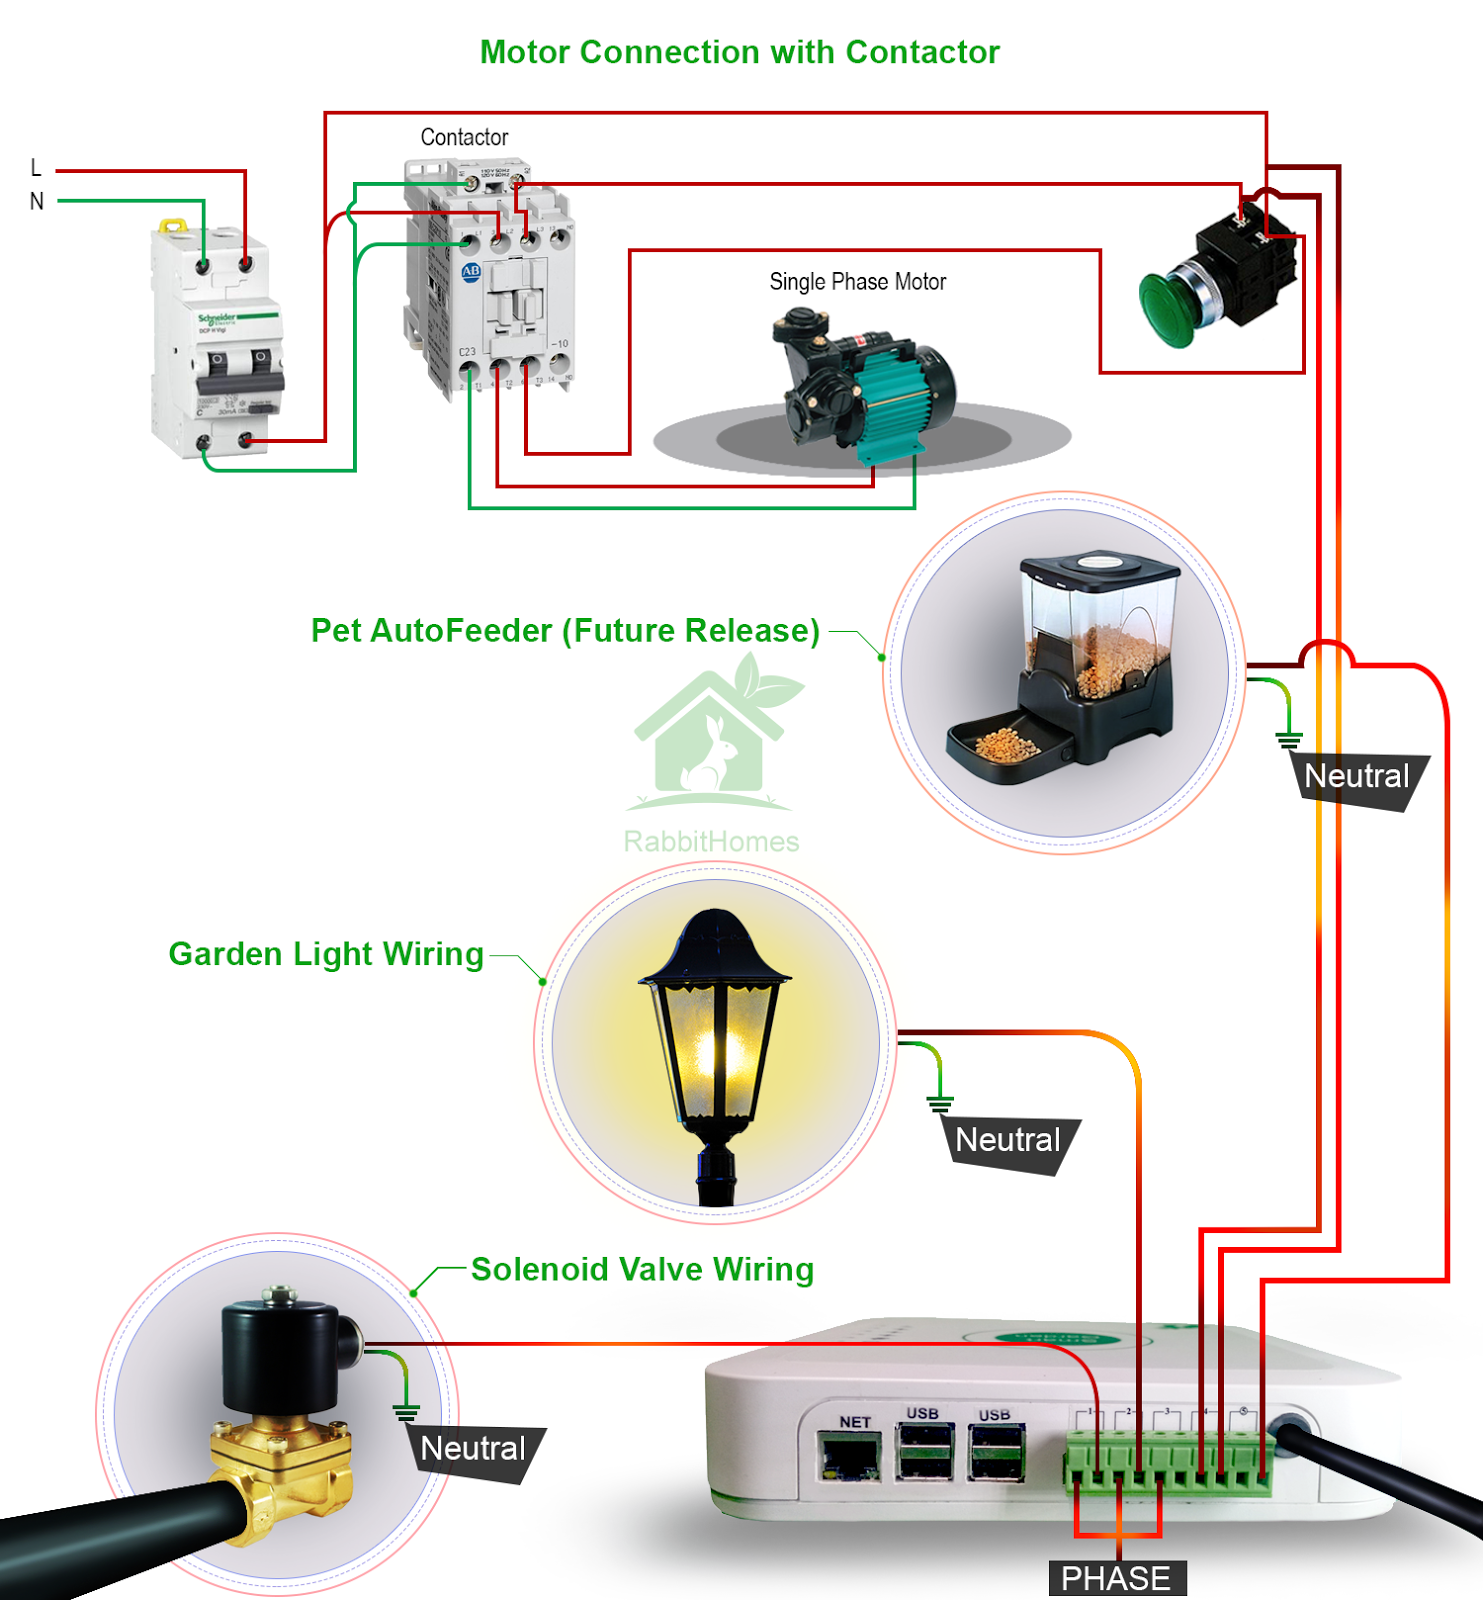 Terrace Garden Automation 2016 Automatic Light Controlling System Circuit Diagram 4 Install Smartgarden Mobile Application On Your Smartphone